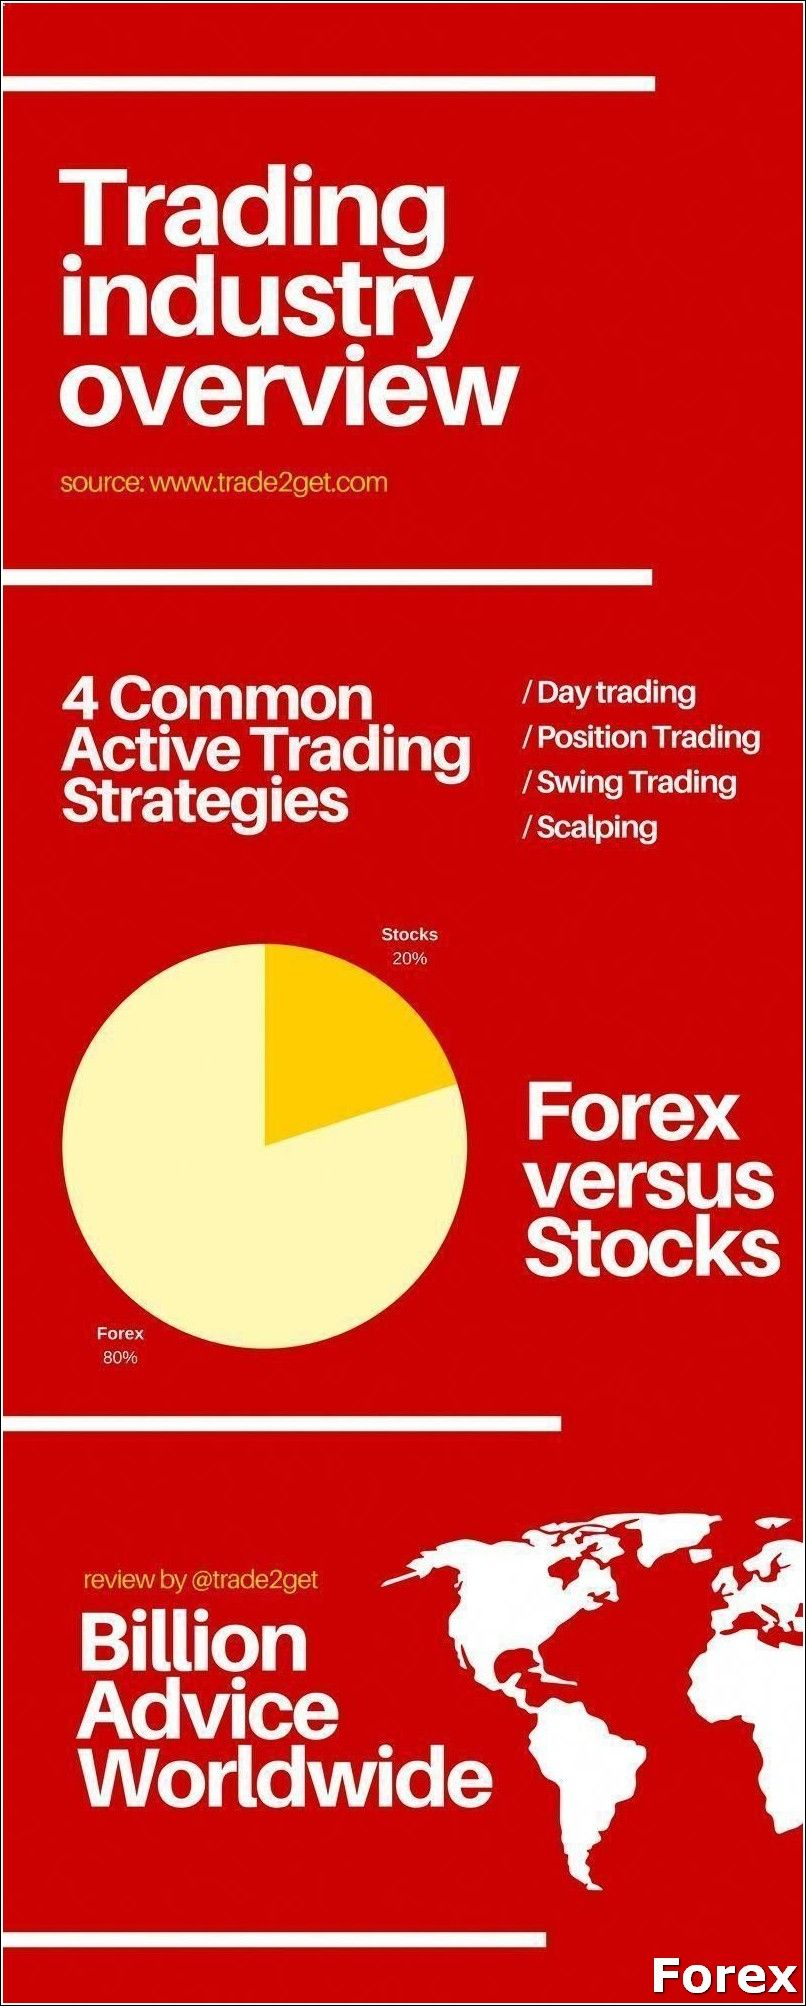 Forex Tips 1 Trade With Demo Account Find Out More At The